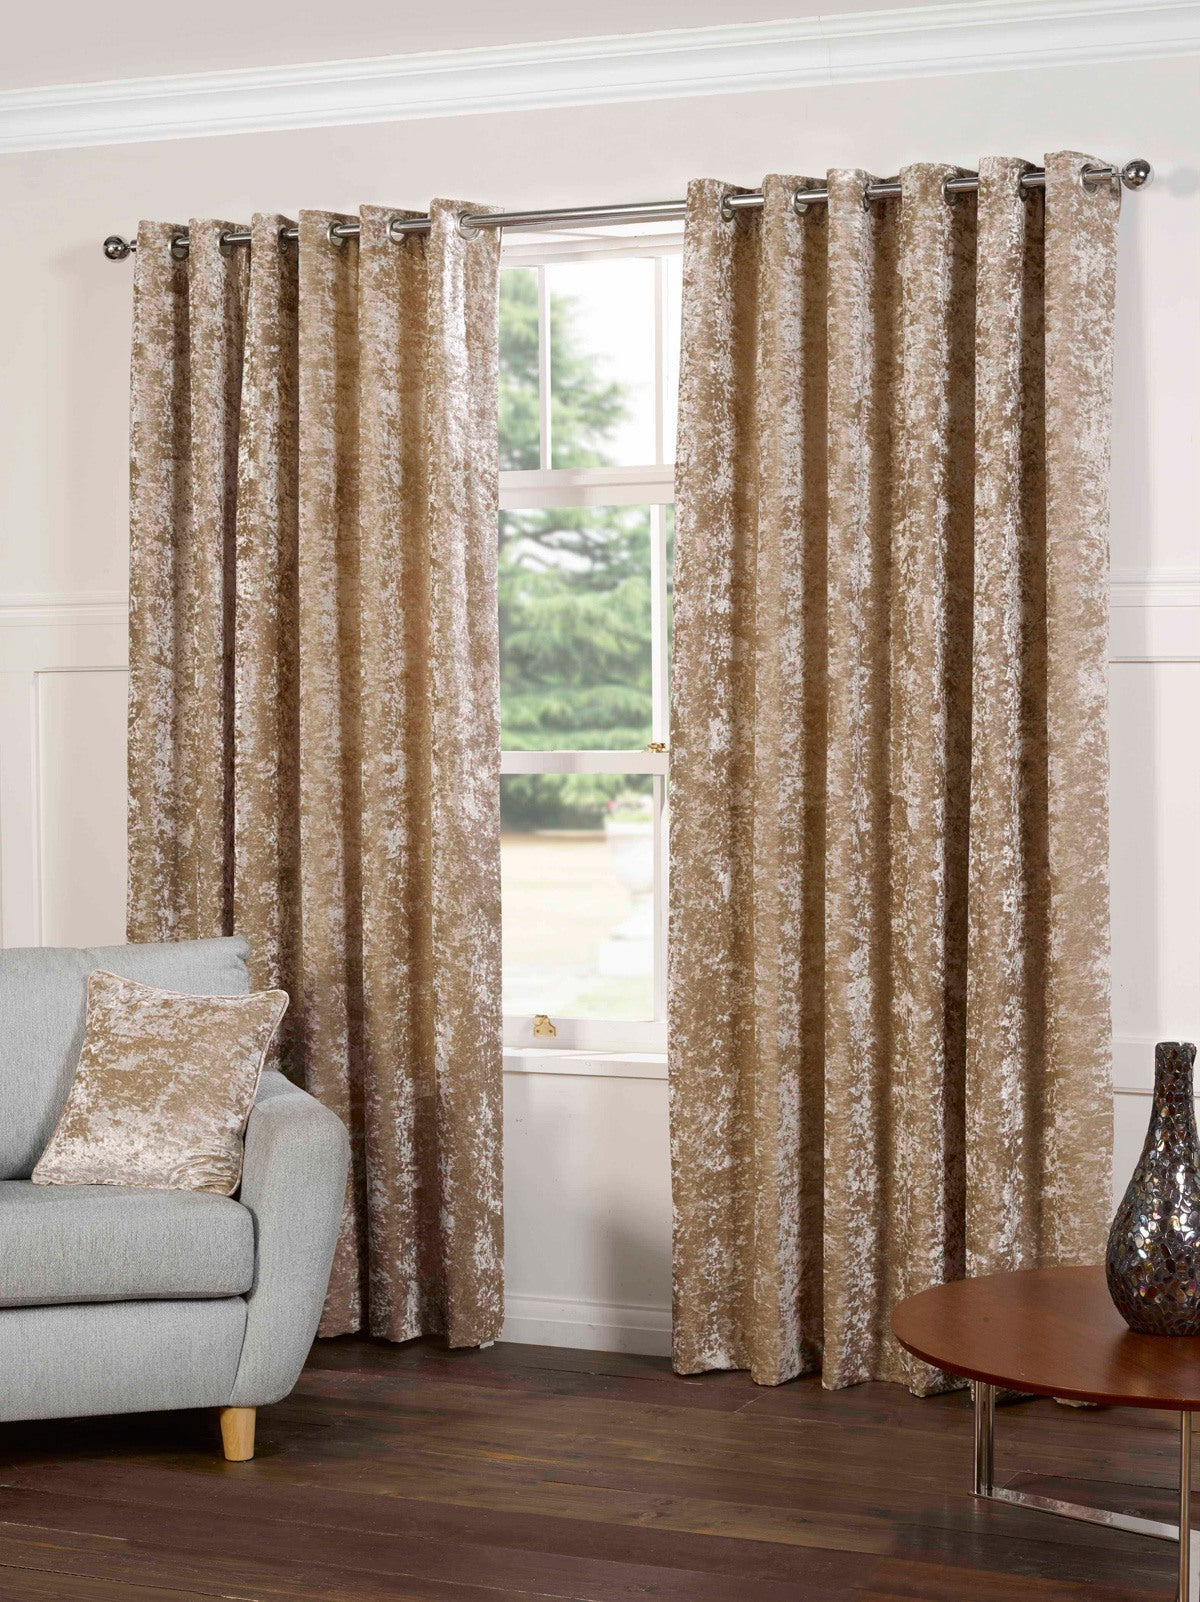 Gordon John Ready Made Curtains Plush Ready Made Lined Eyelet Curtains Silk Picture